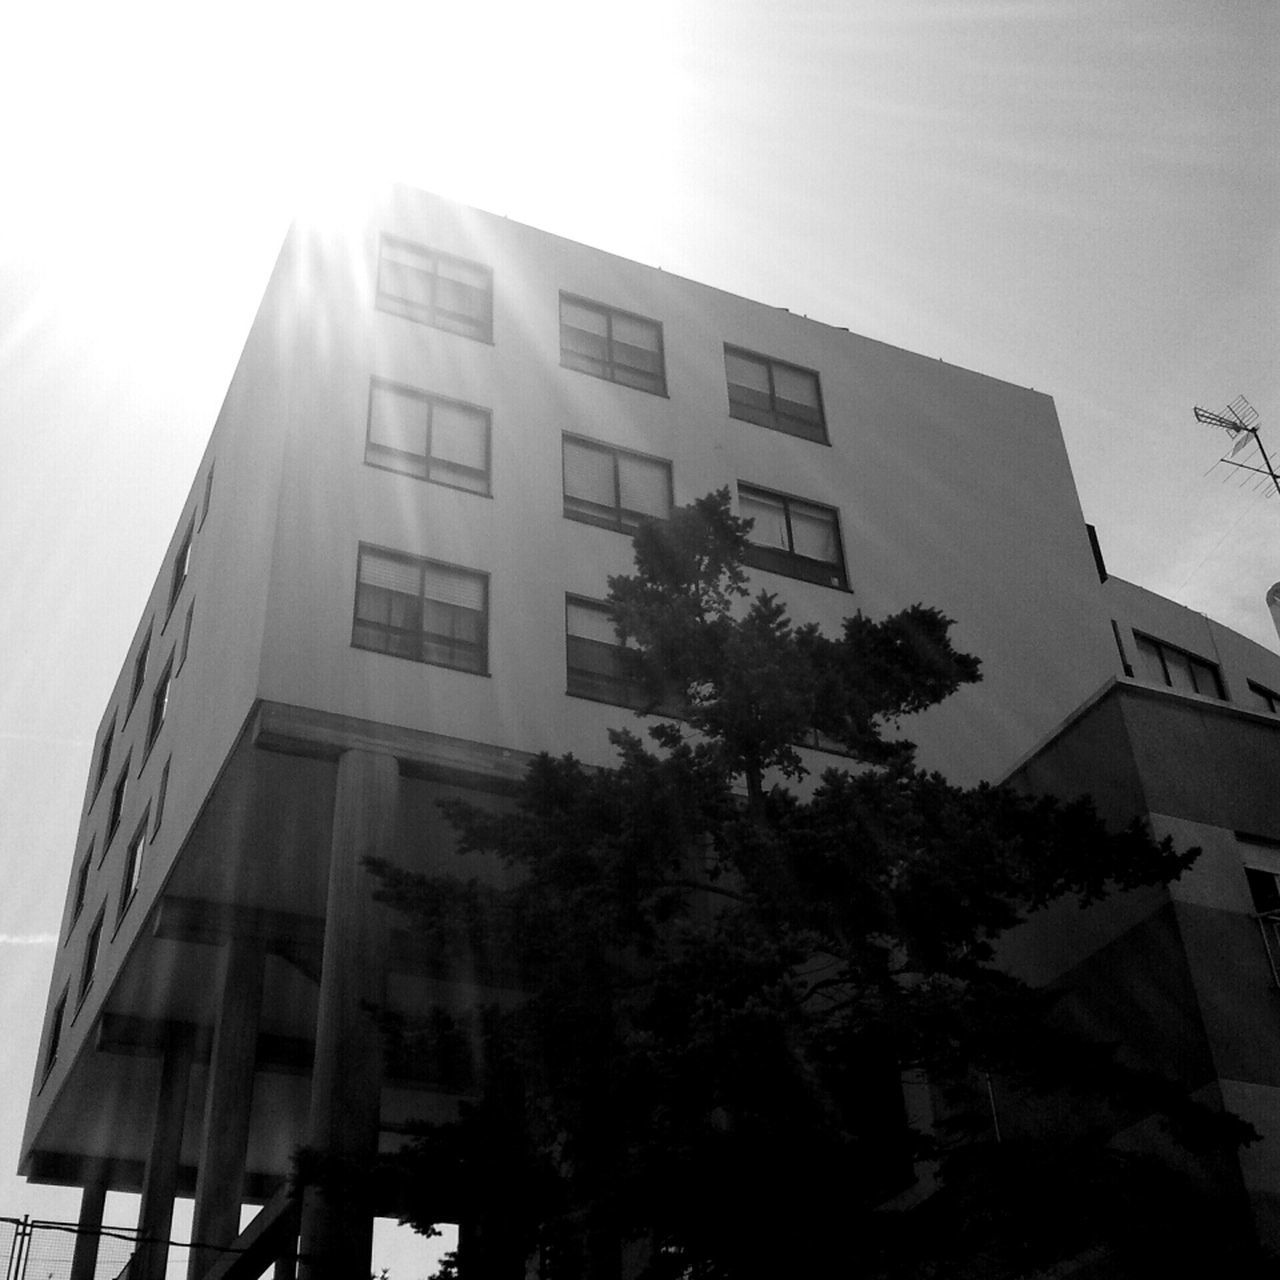 building exterior, low angle view, architecture, built structure, window, no people, tree, outdoors, modern, day, city, sky